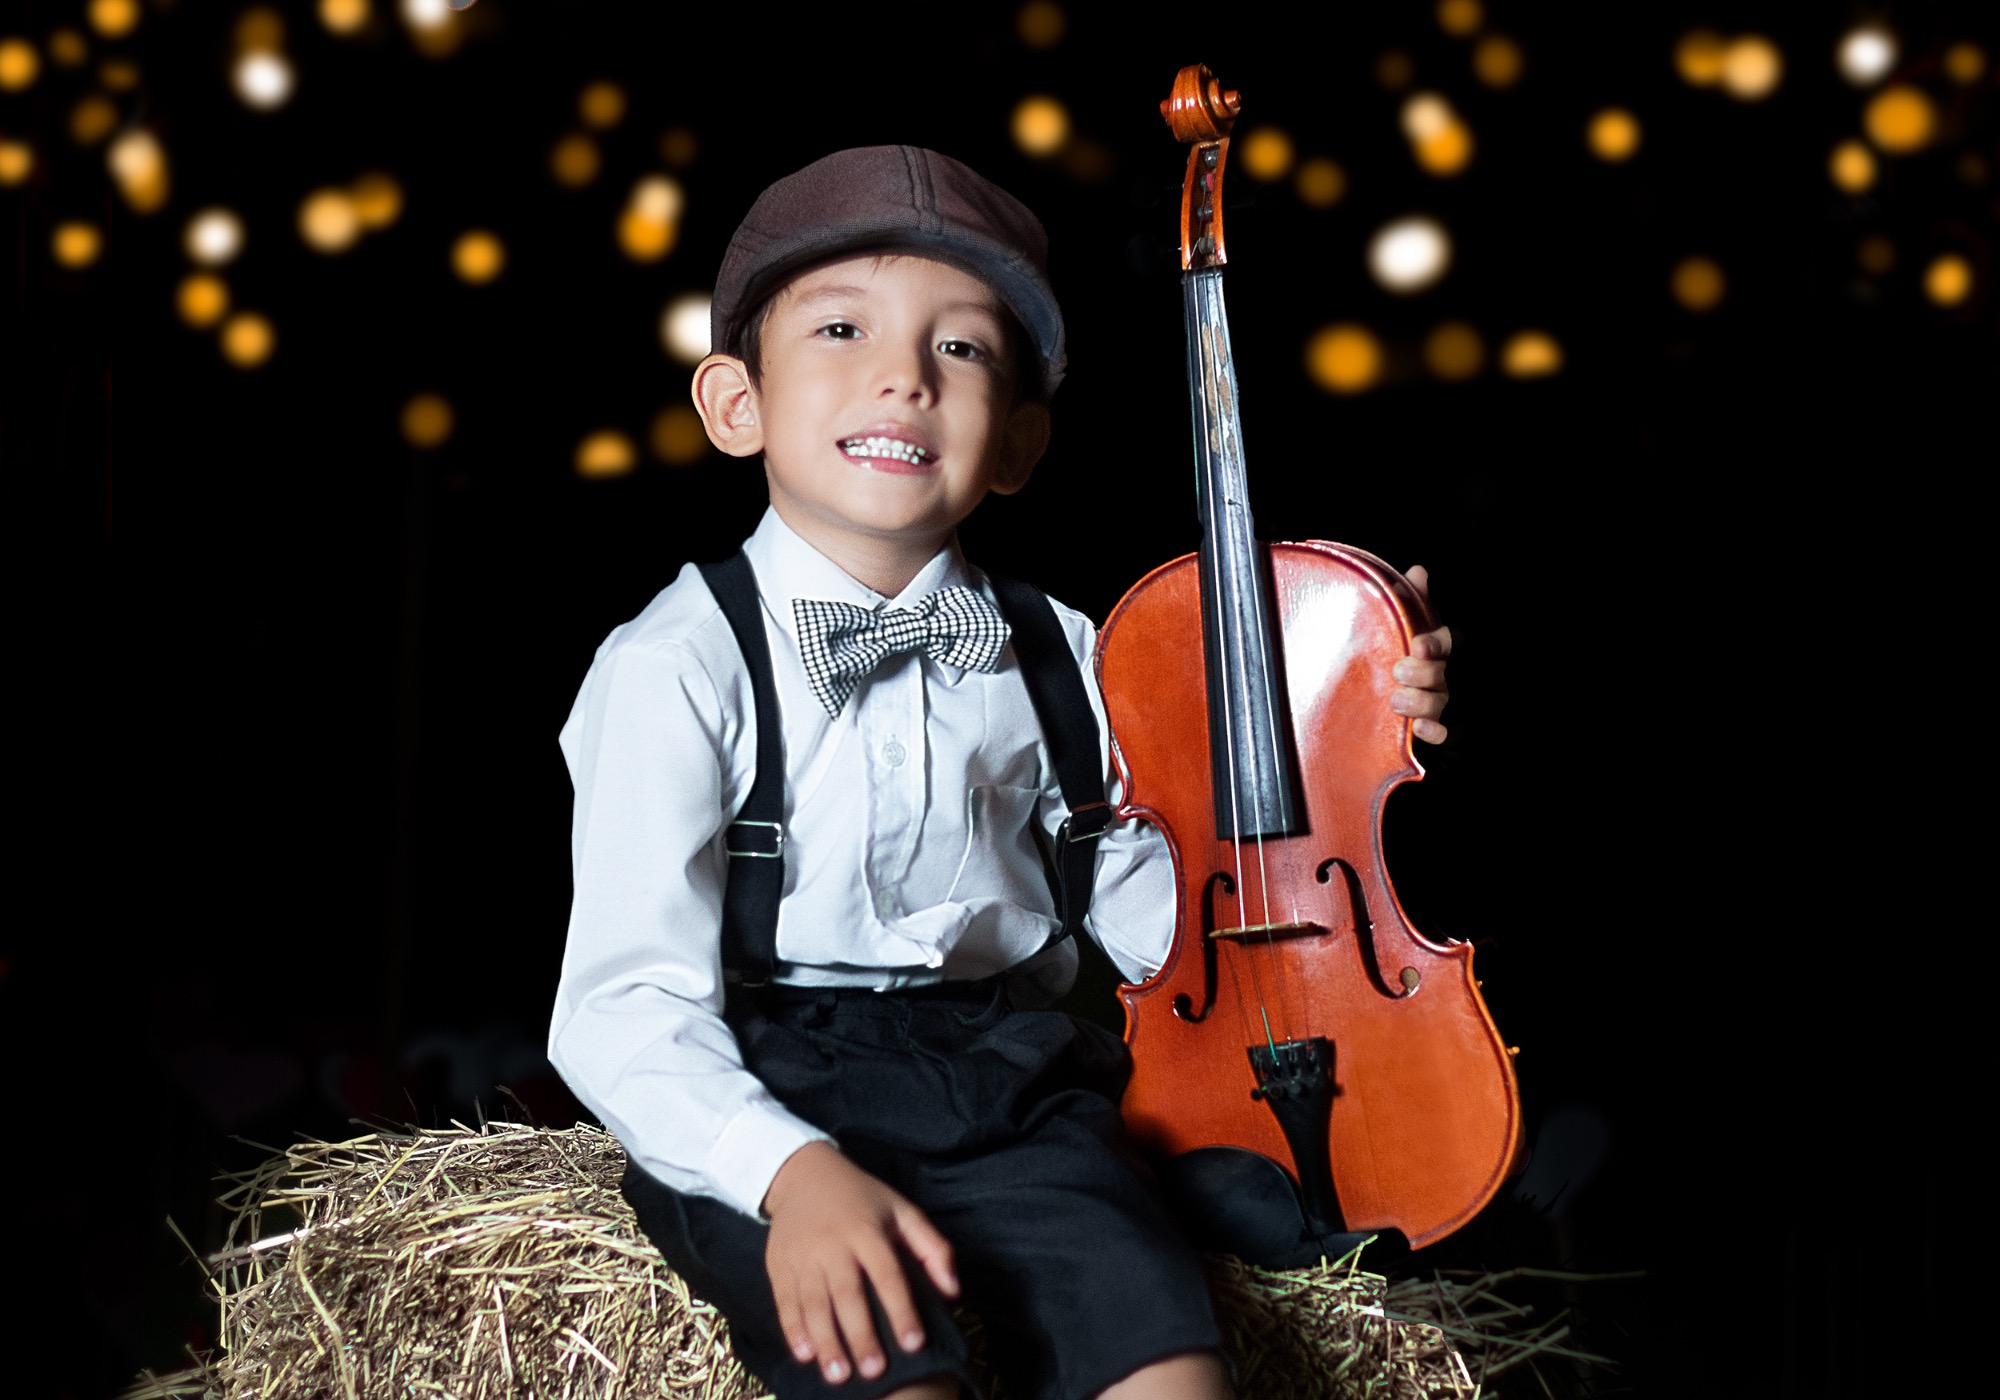 little boy sitting on a hay bale holding an oversized violin